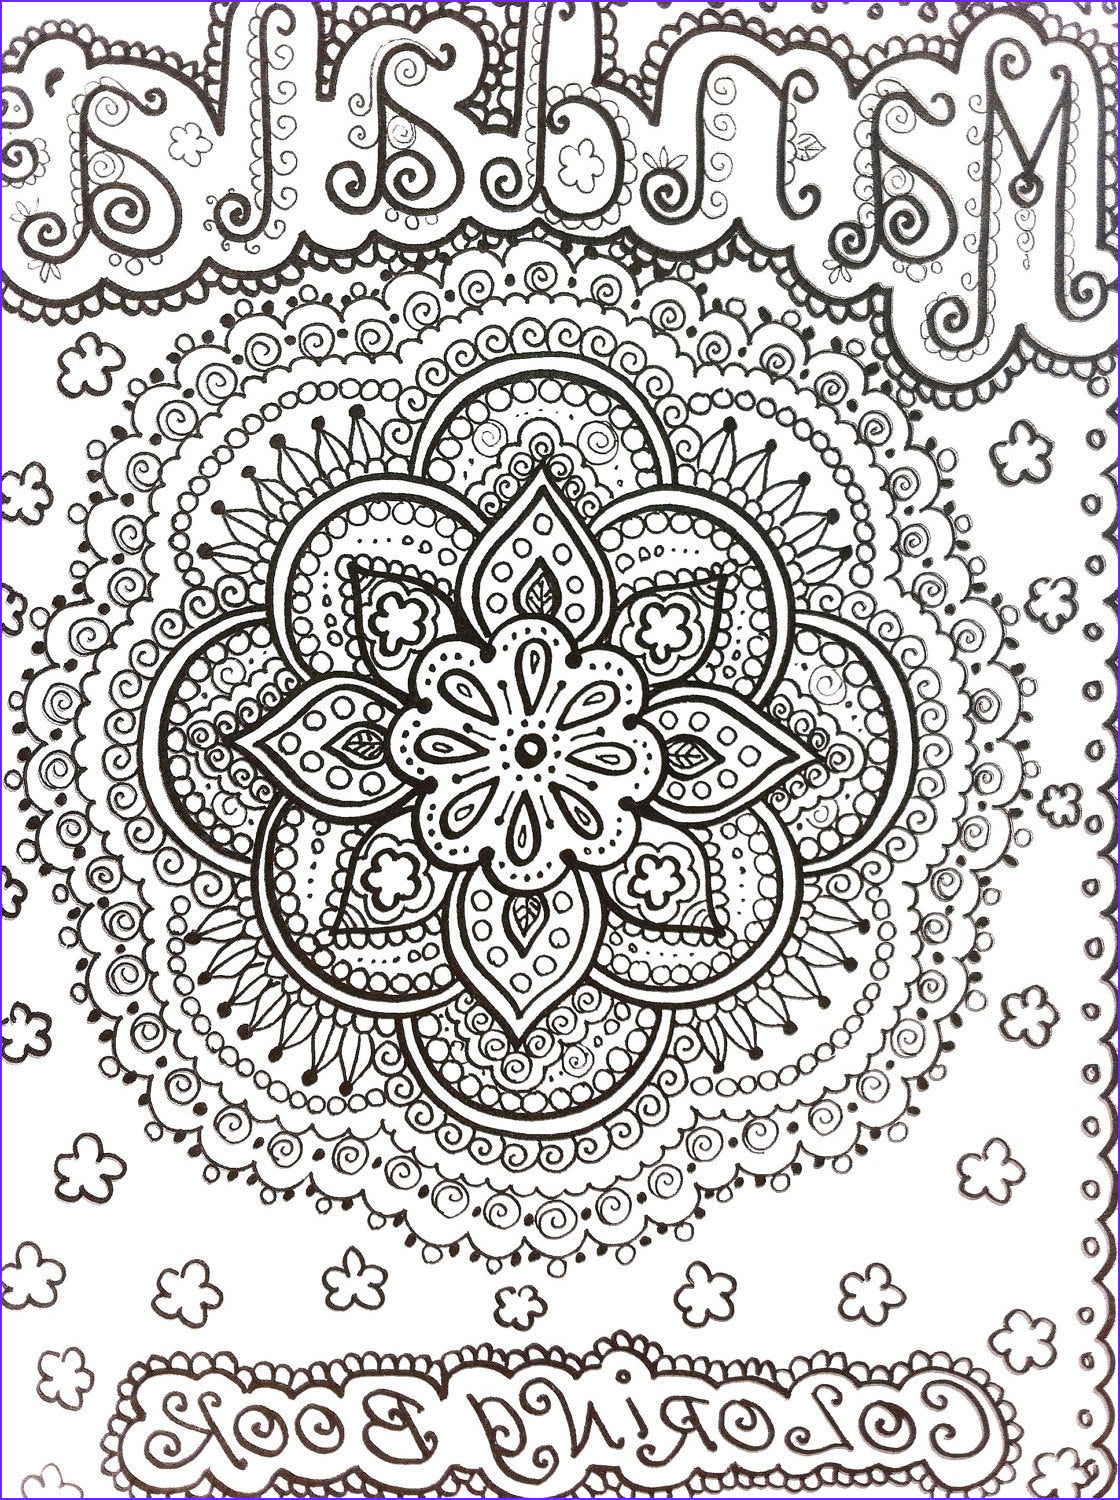 Henna Coloring Elegant Collection Coloring Book Mandalas Henna Style Coloring Book by